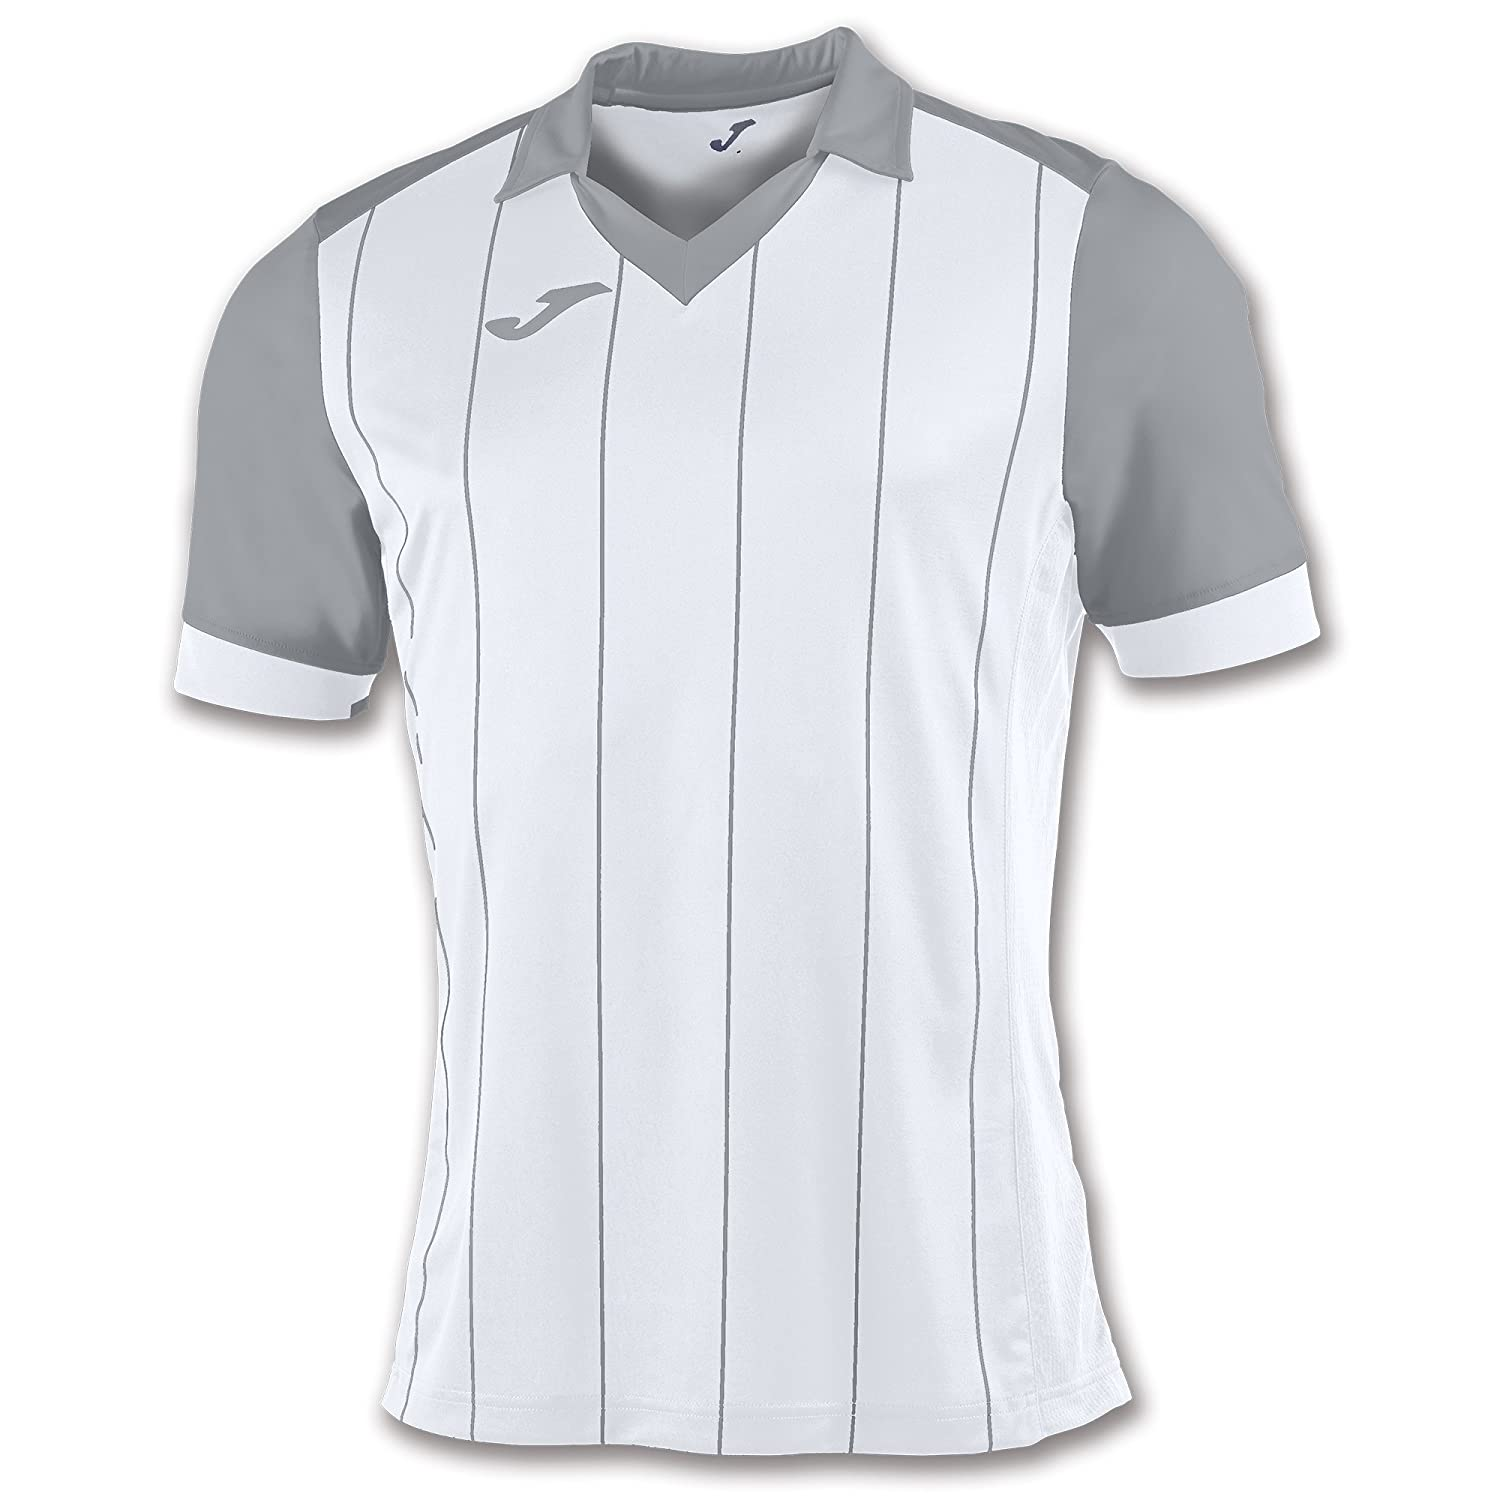 Amazon.com : Joma Teamwear T-Shirt Grada Short Sleeves Green-White Uniforms CAMISETAS EQUIP : Sports & Outdoors